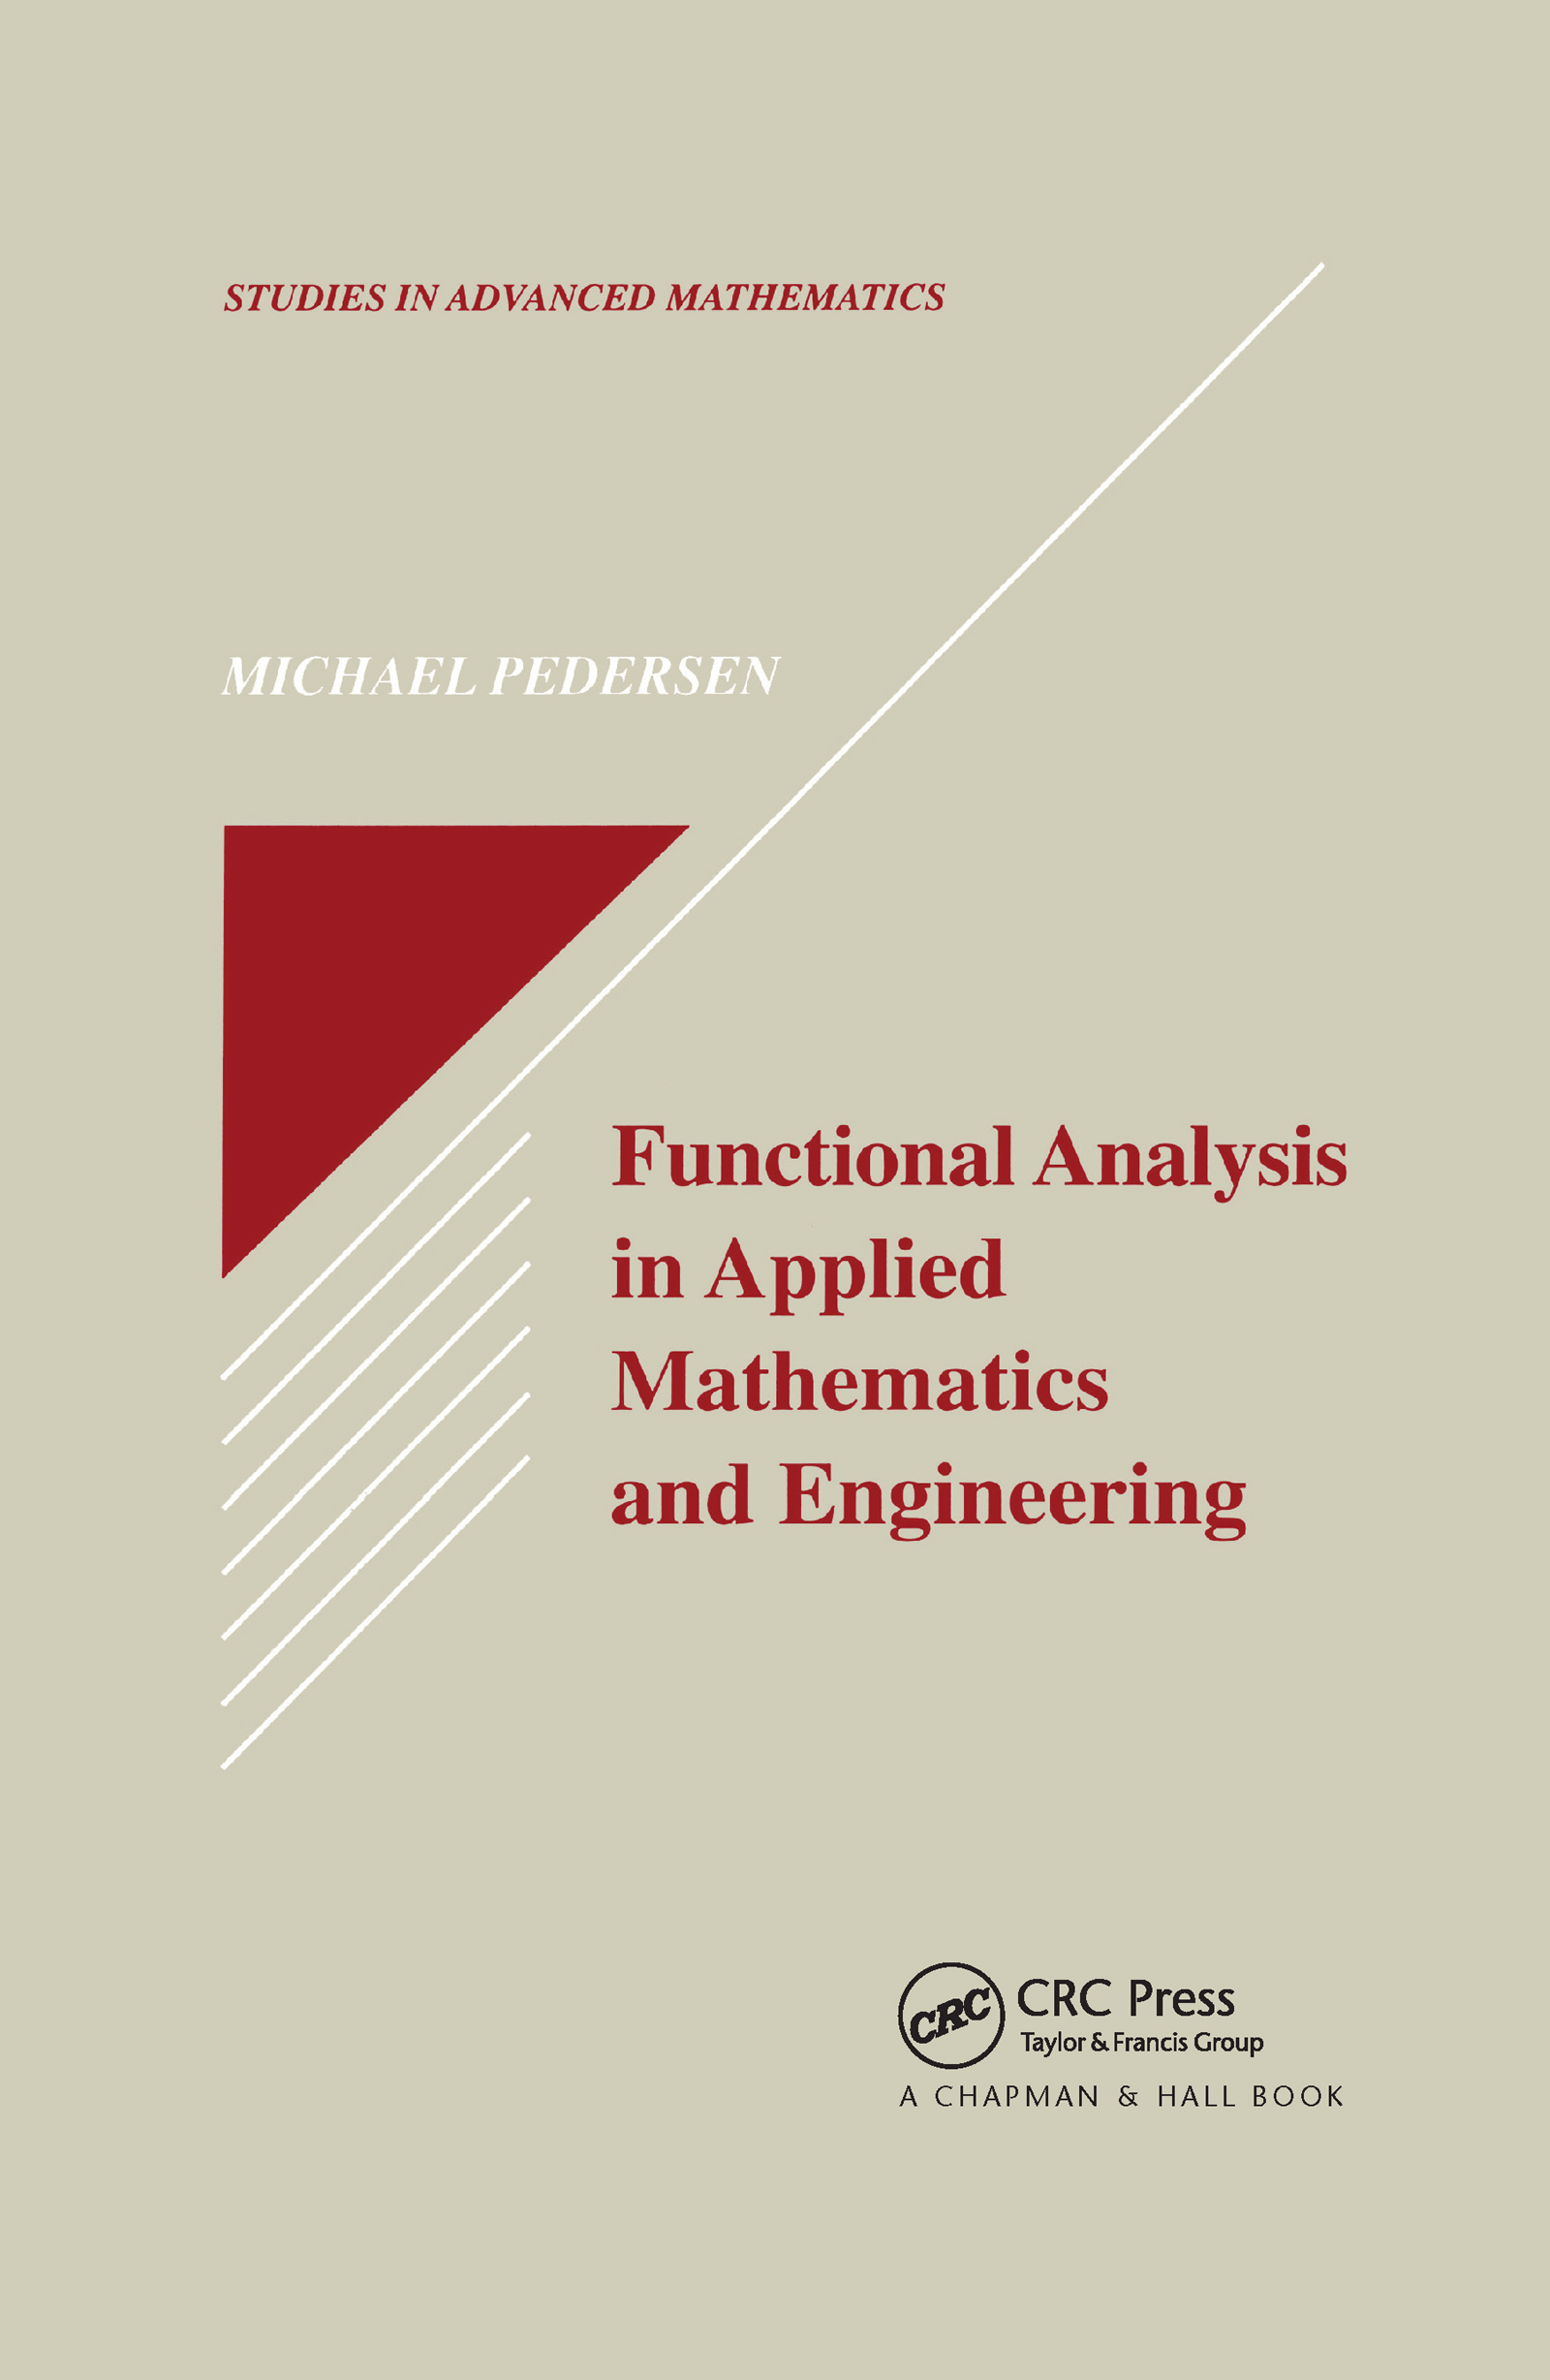 Functional Analysis in Applied Mathematics and Engineering